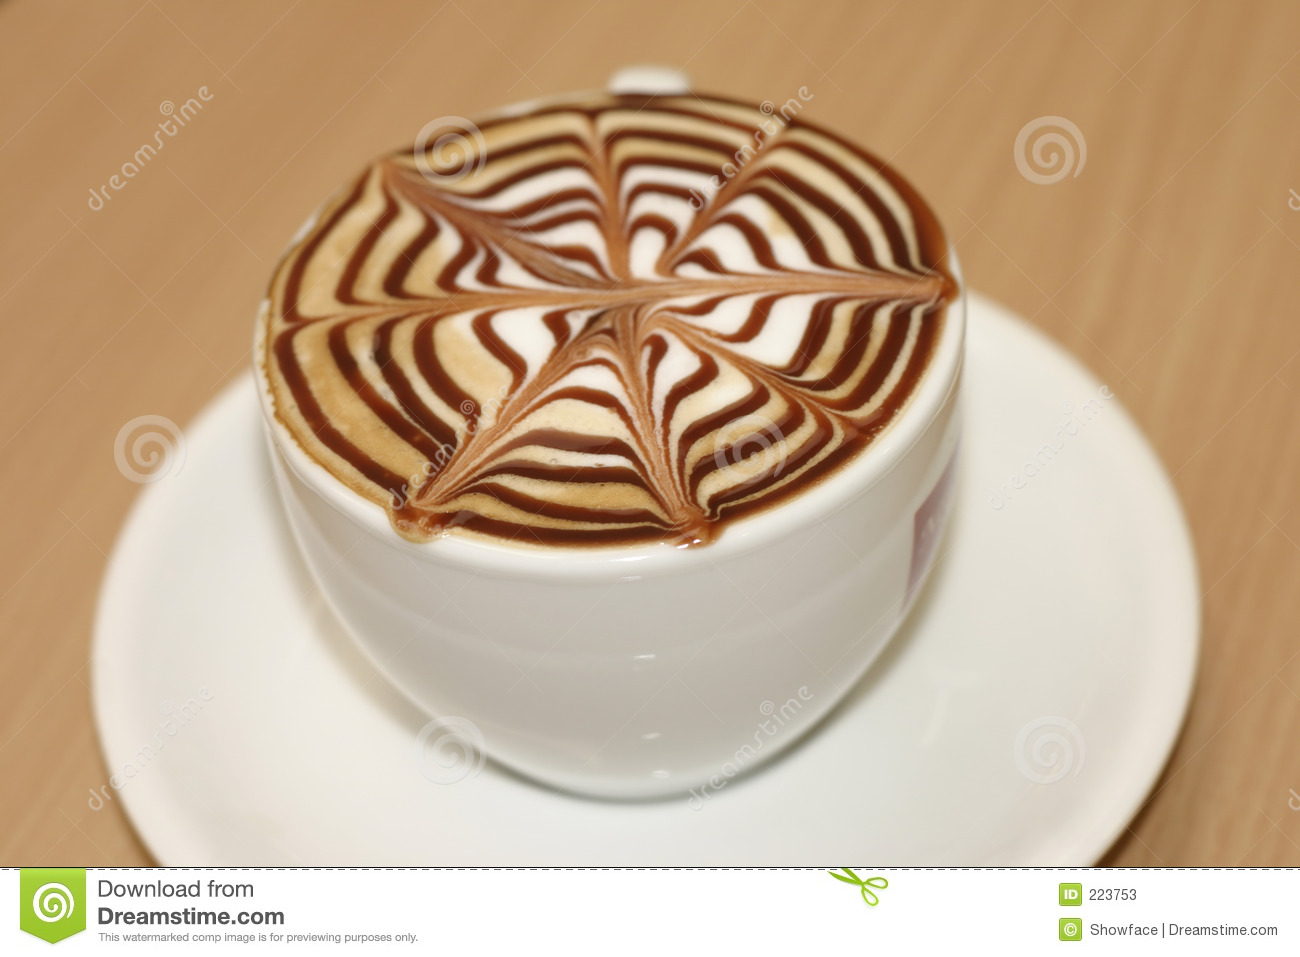 coffee break stock image image of saucer breakfast mocha 223753. Black Bedroom Furniture Sets. Home Design Ideas